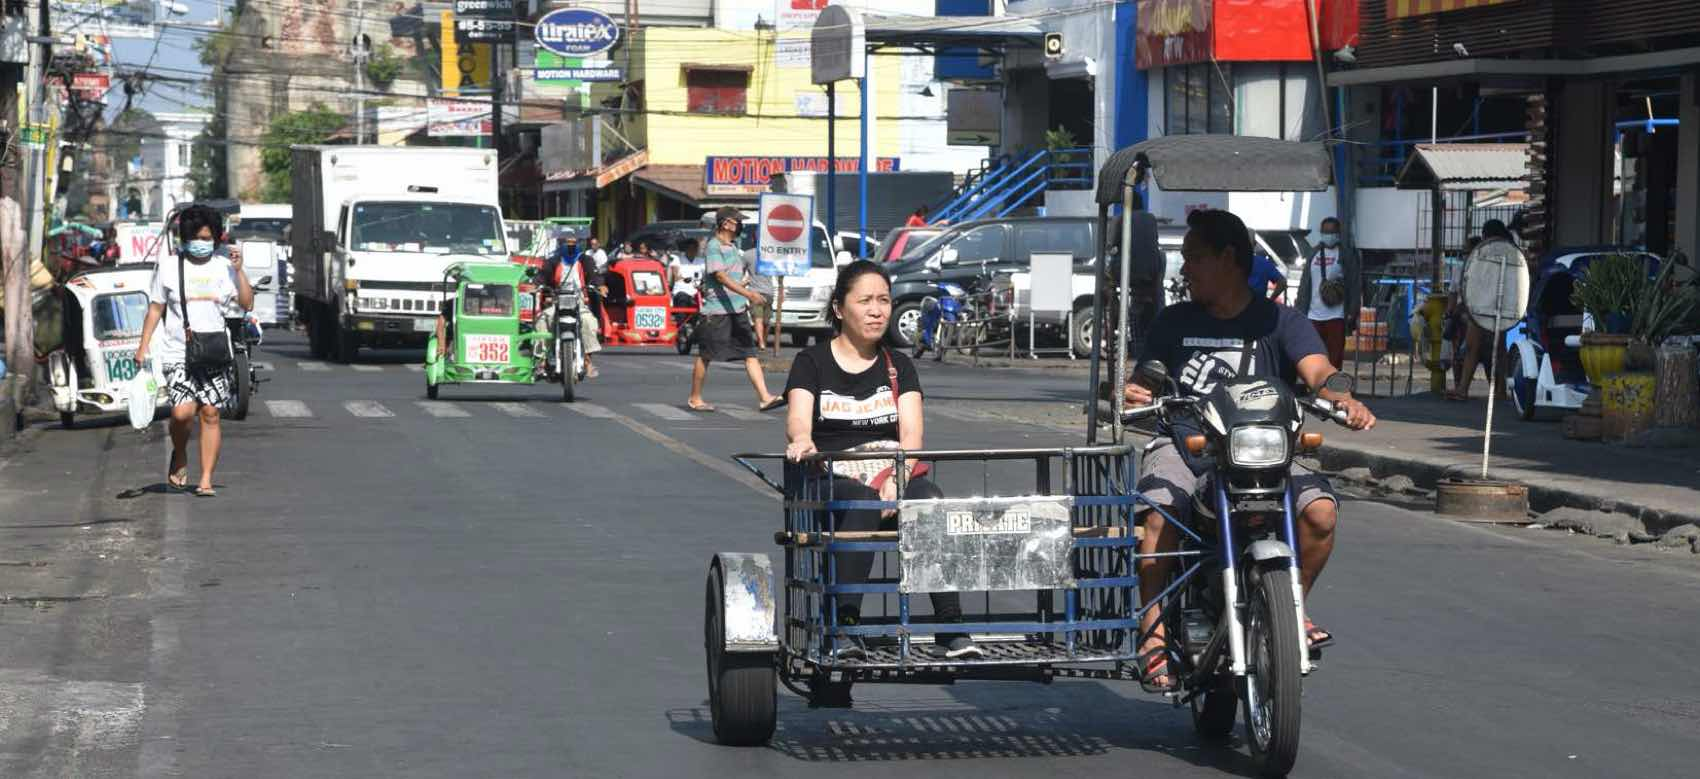 Daily life in Laoag City before the lockdown